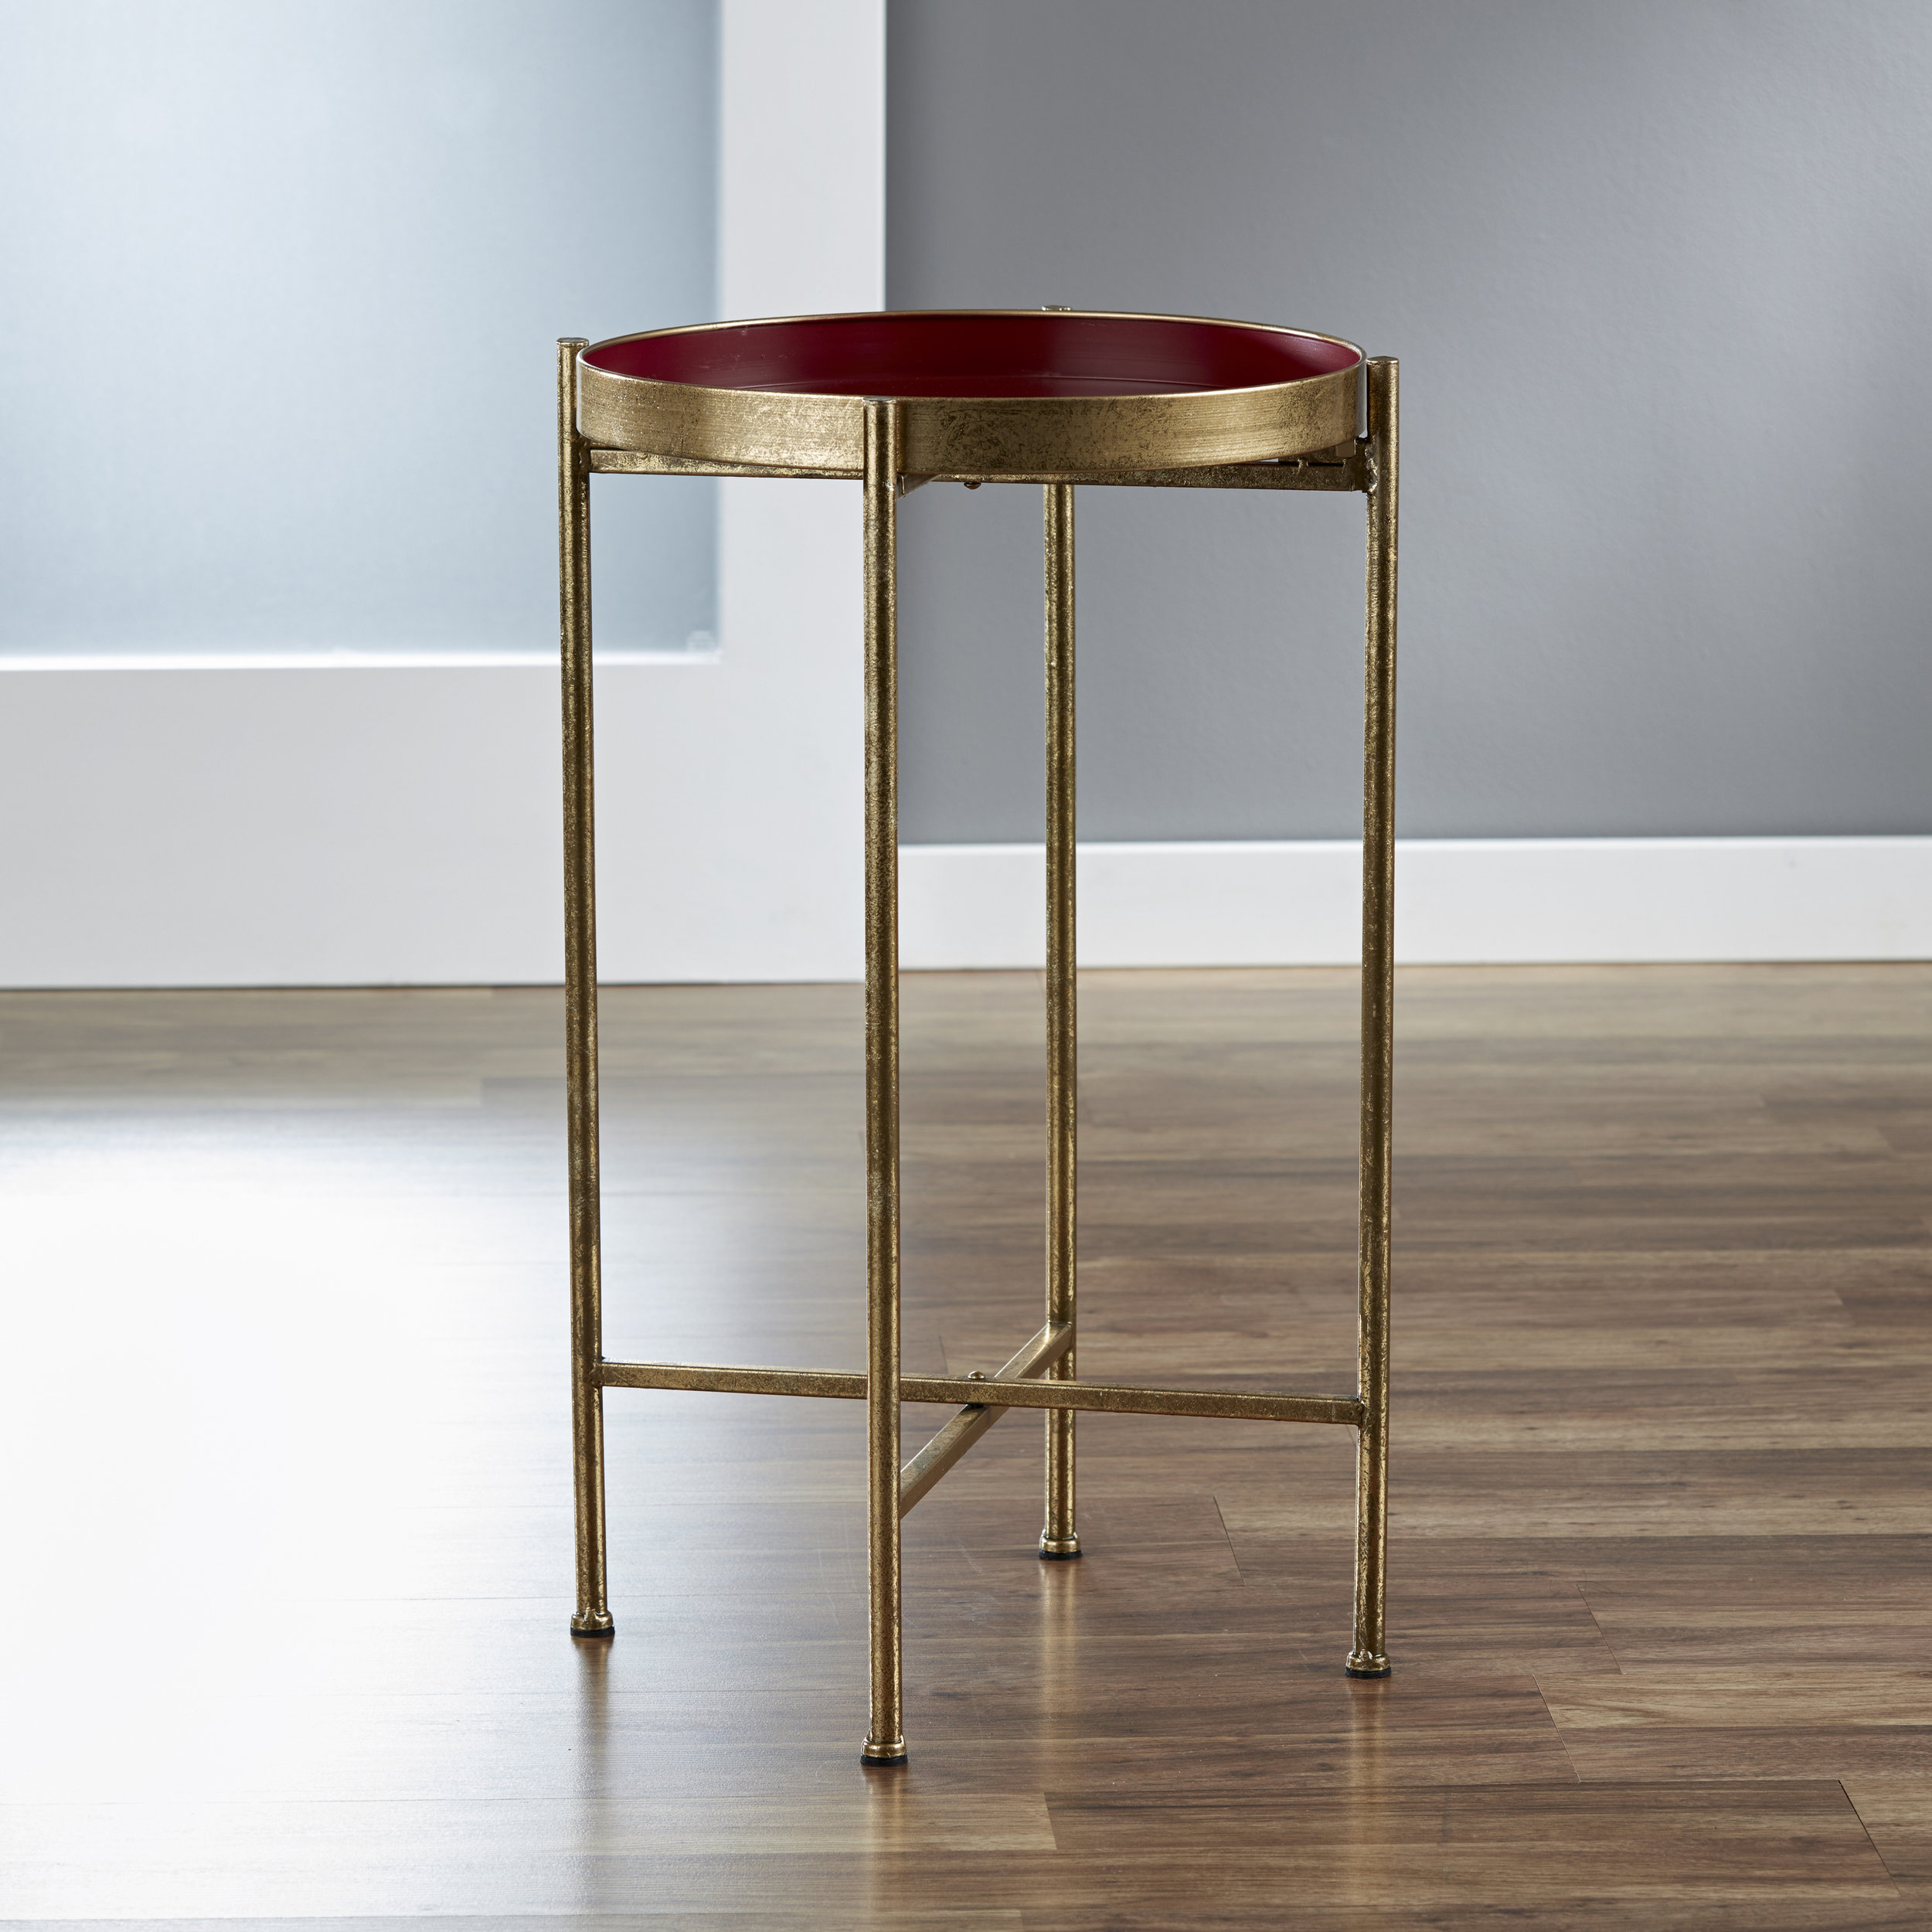 Small Gild Pop Up Tray Table in Red